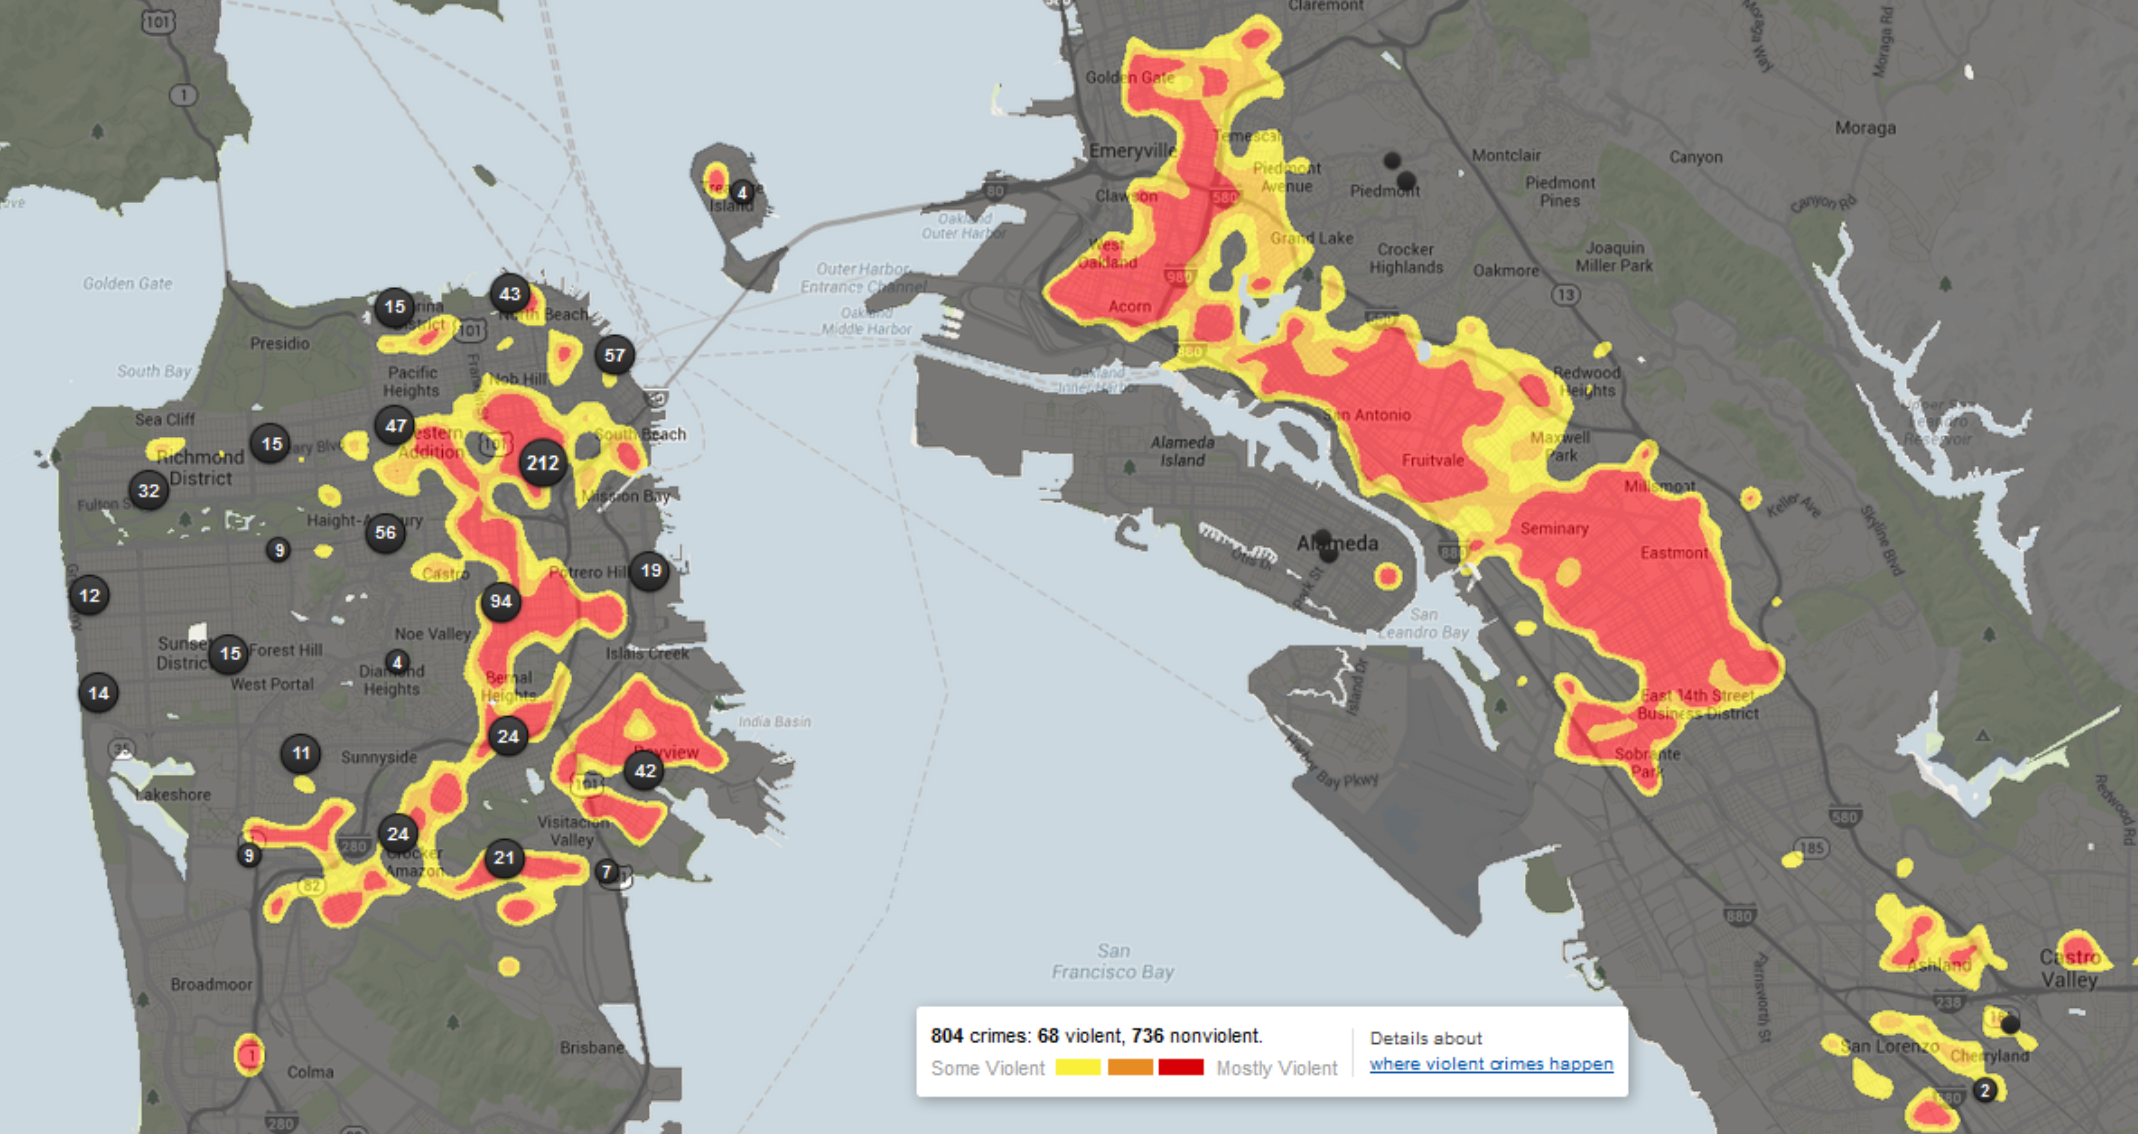 www trulia com crime map with Oakland Crime Heat Map on Portland Crime Map additionally Lapd Crime Mapping in addition 5762 besides Neighborhood Crime By Zip Code besides Map Of Oakland.